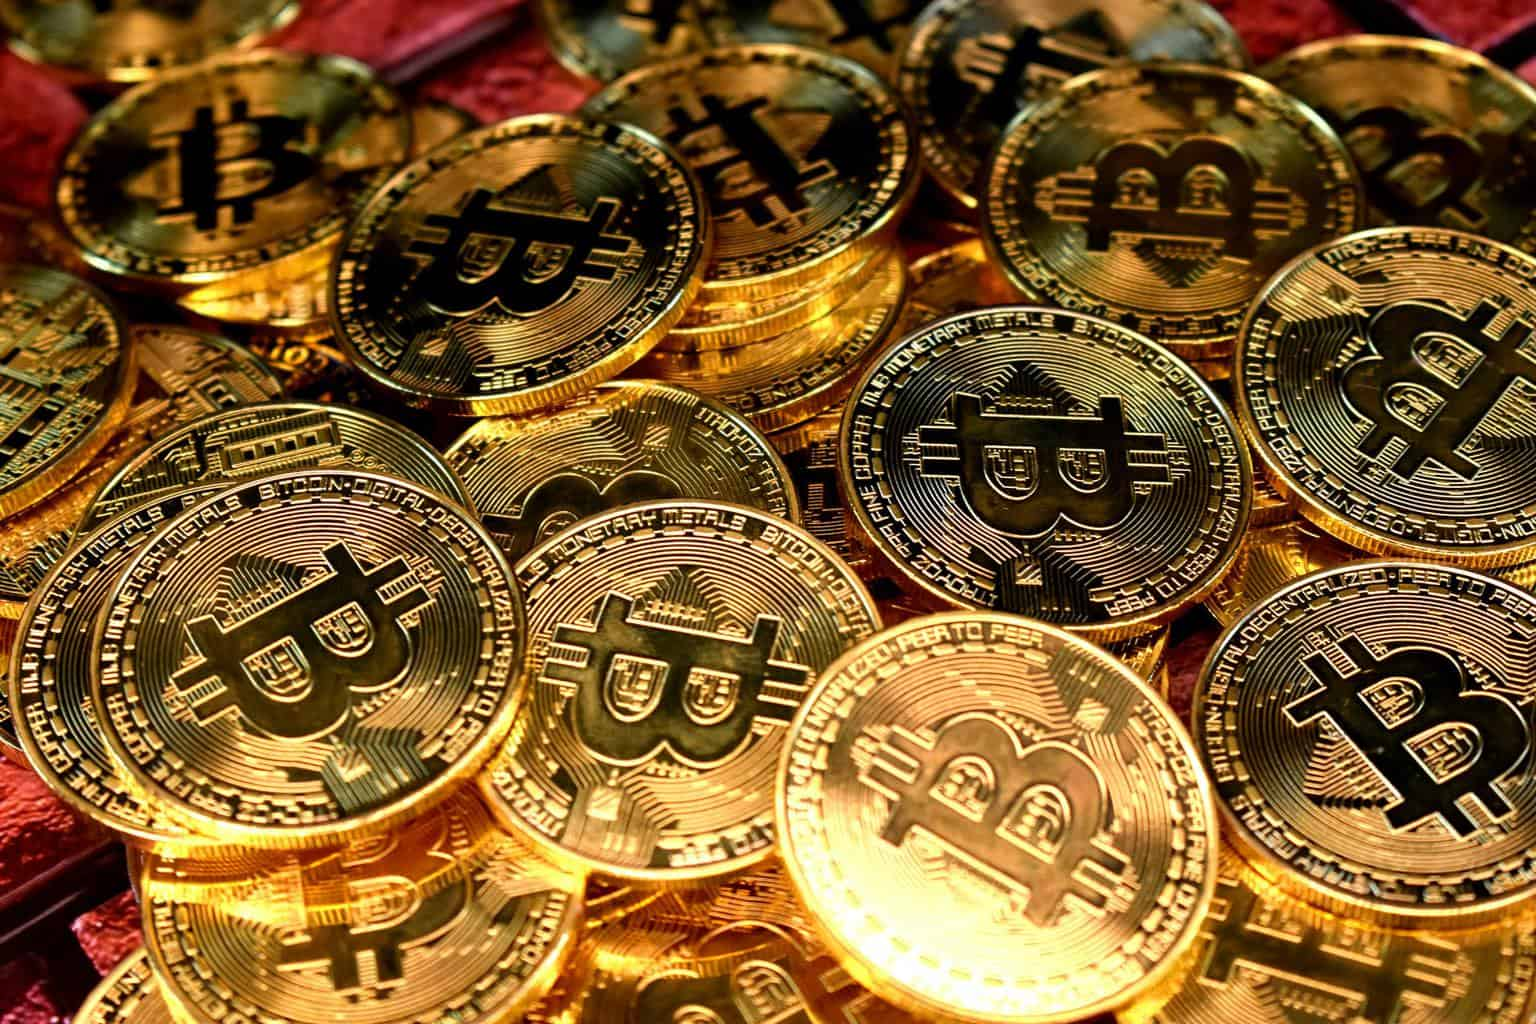 What Cryptocurrency Is the Best to Buy if You Have $1000?